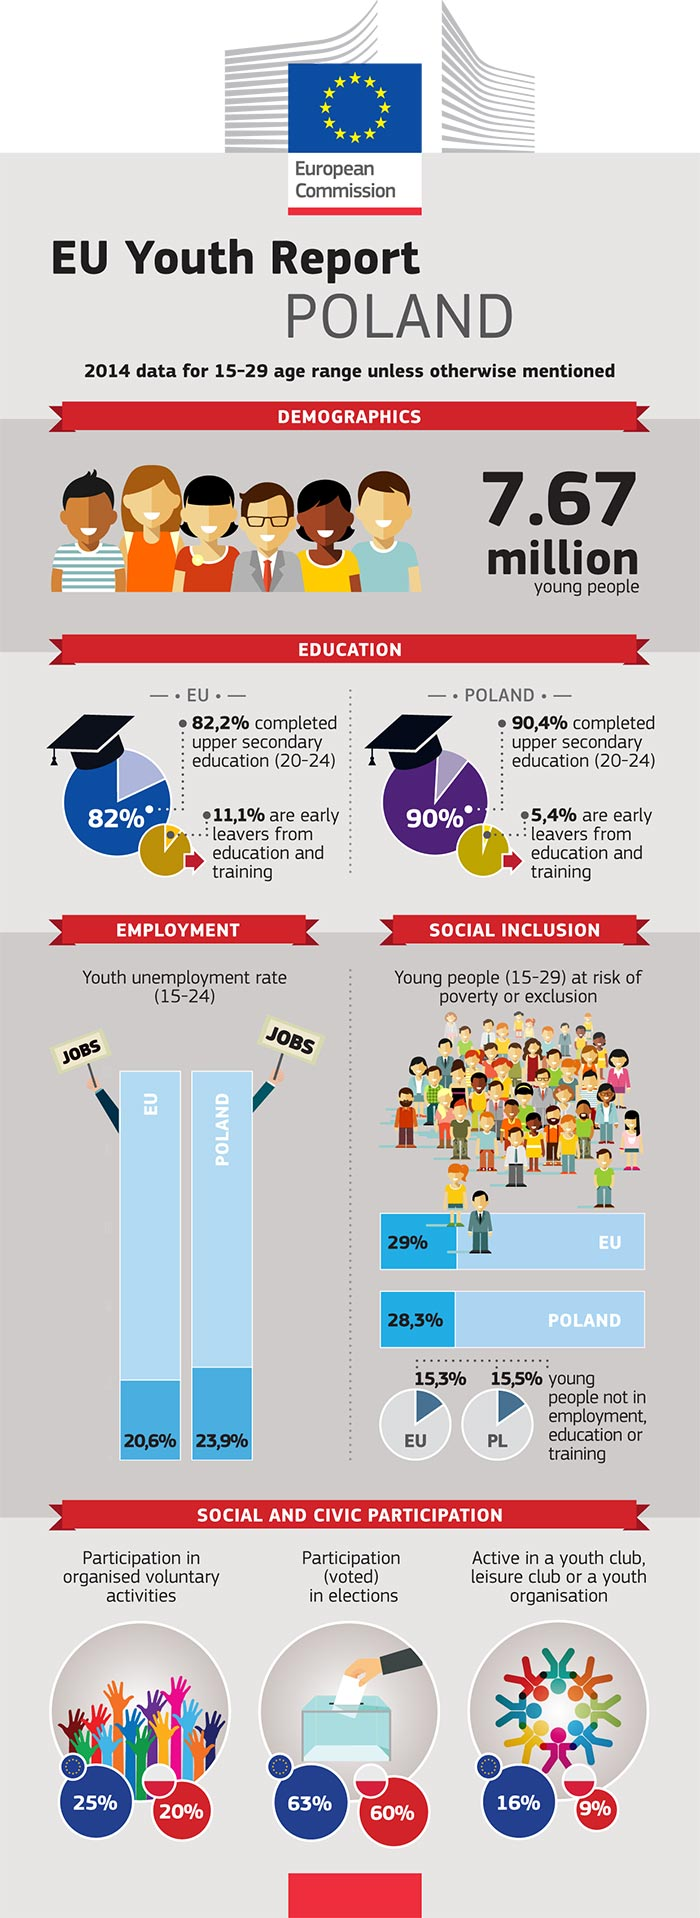 EU Youth Report infographic: Poland